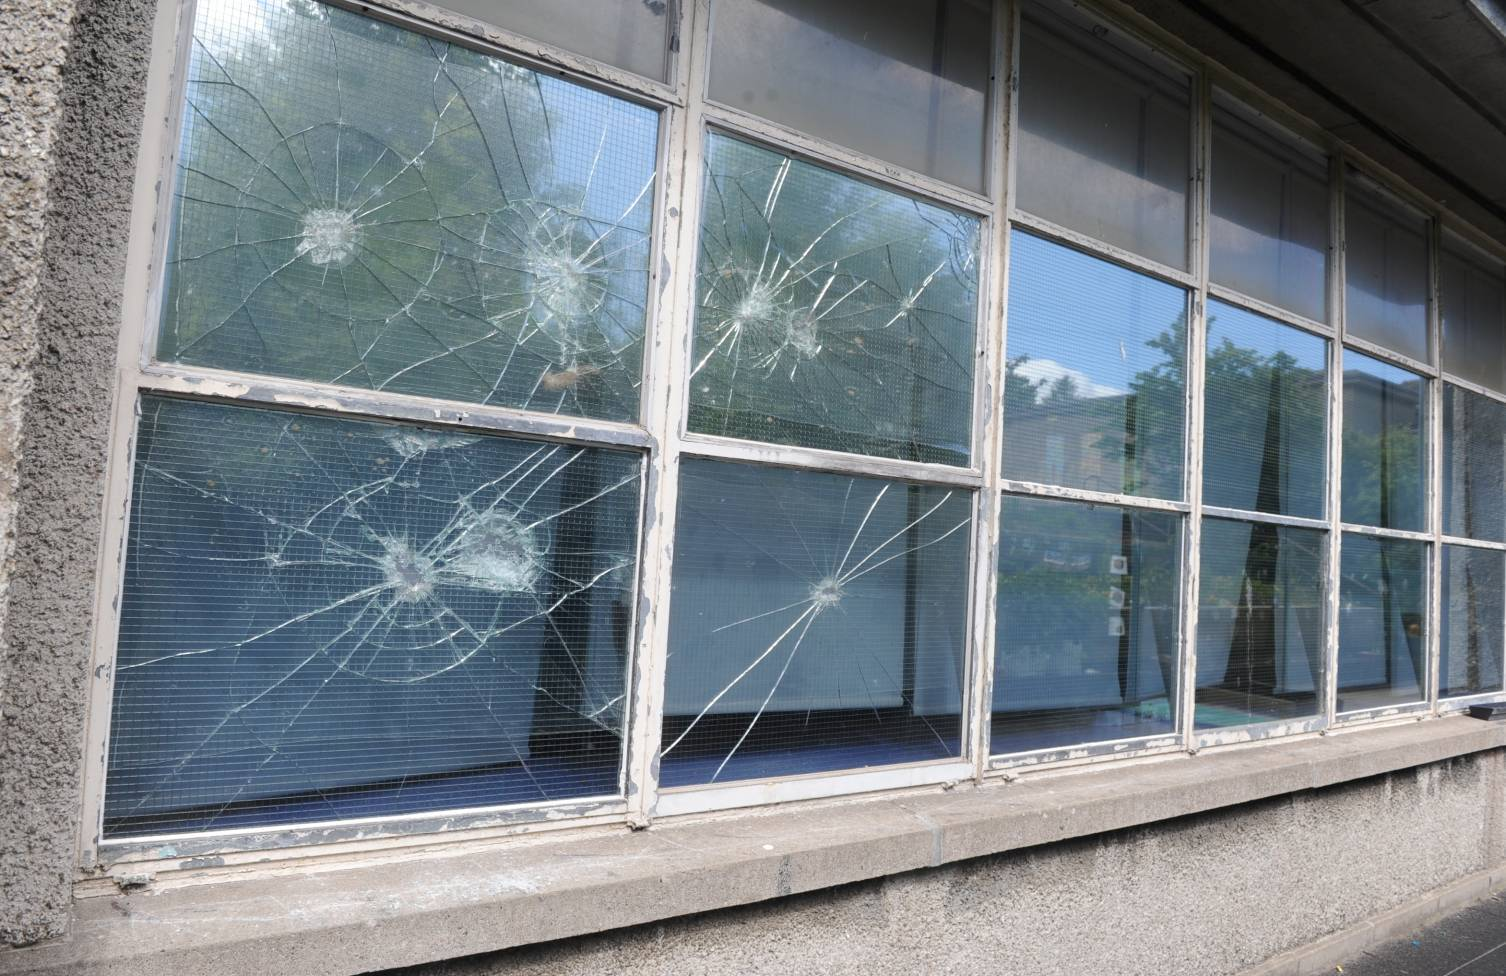 An Aberdeen primary school had its windows smashed earlier this year.